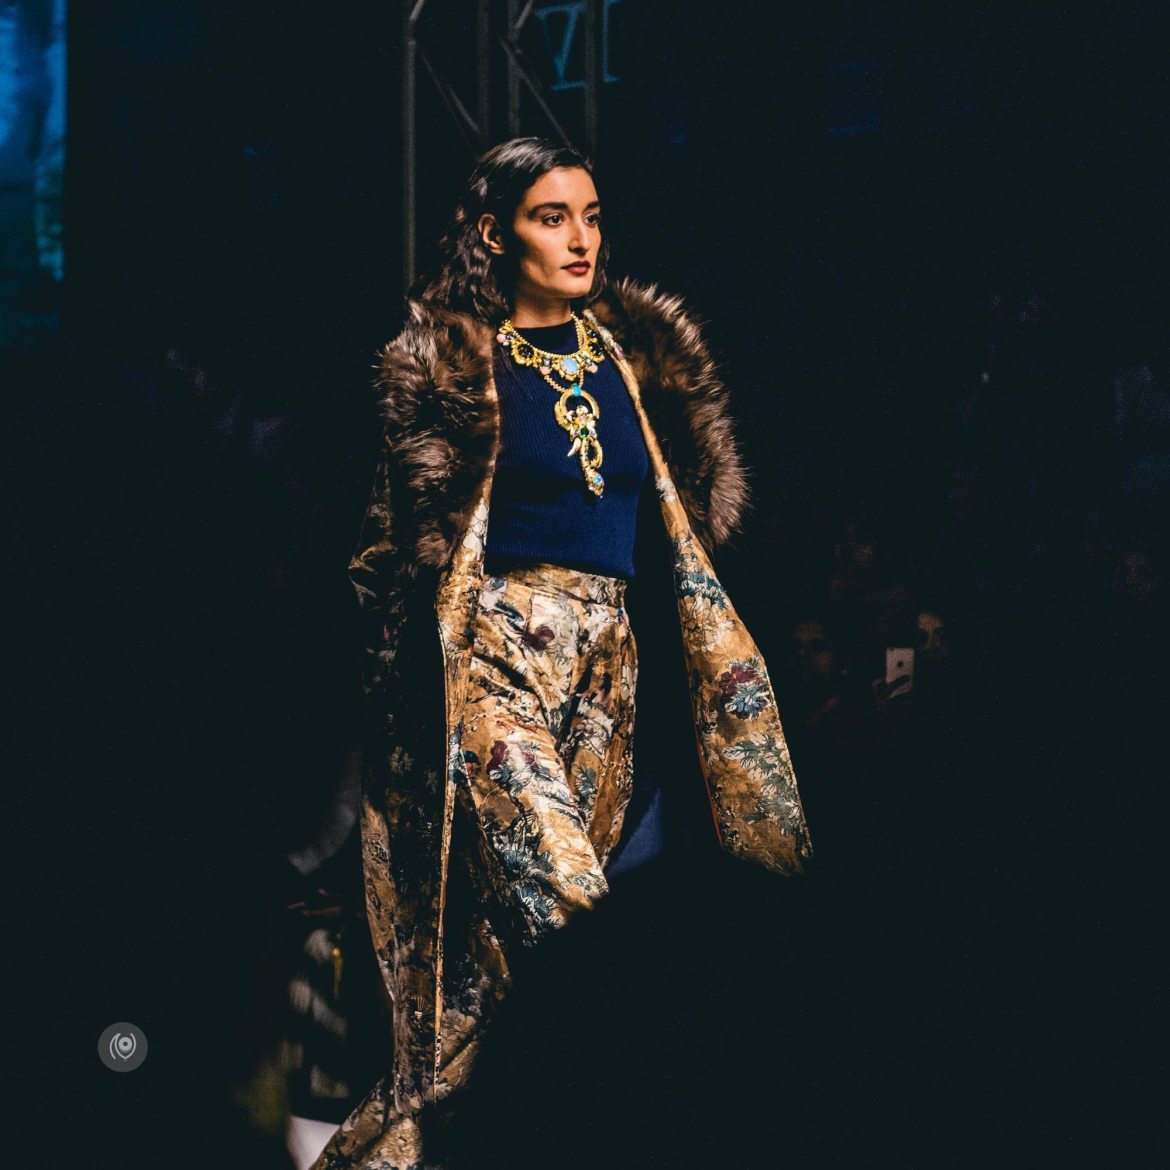 #CoverUp 65, #AIFWAW16, Amazon India Fashion Week Autumn Winter 2016, Varun Bahl, Hemant Nandita, Pushpak Vimaan, Crazy Palette, Naina.co, Naina Redhu, Luxury Photographer, Lifestyle Photographer, Luxury Blogger, Lifestyle Blogger, Experience Collector, Personal Style, #MadeInIndia, #CoverUp